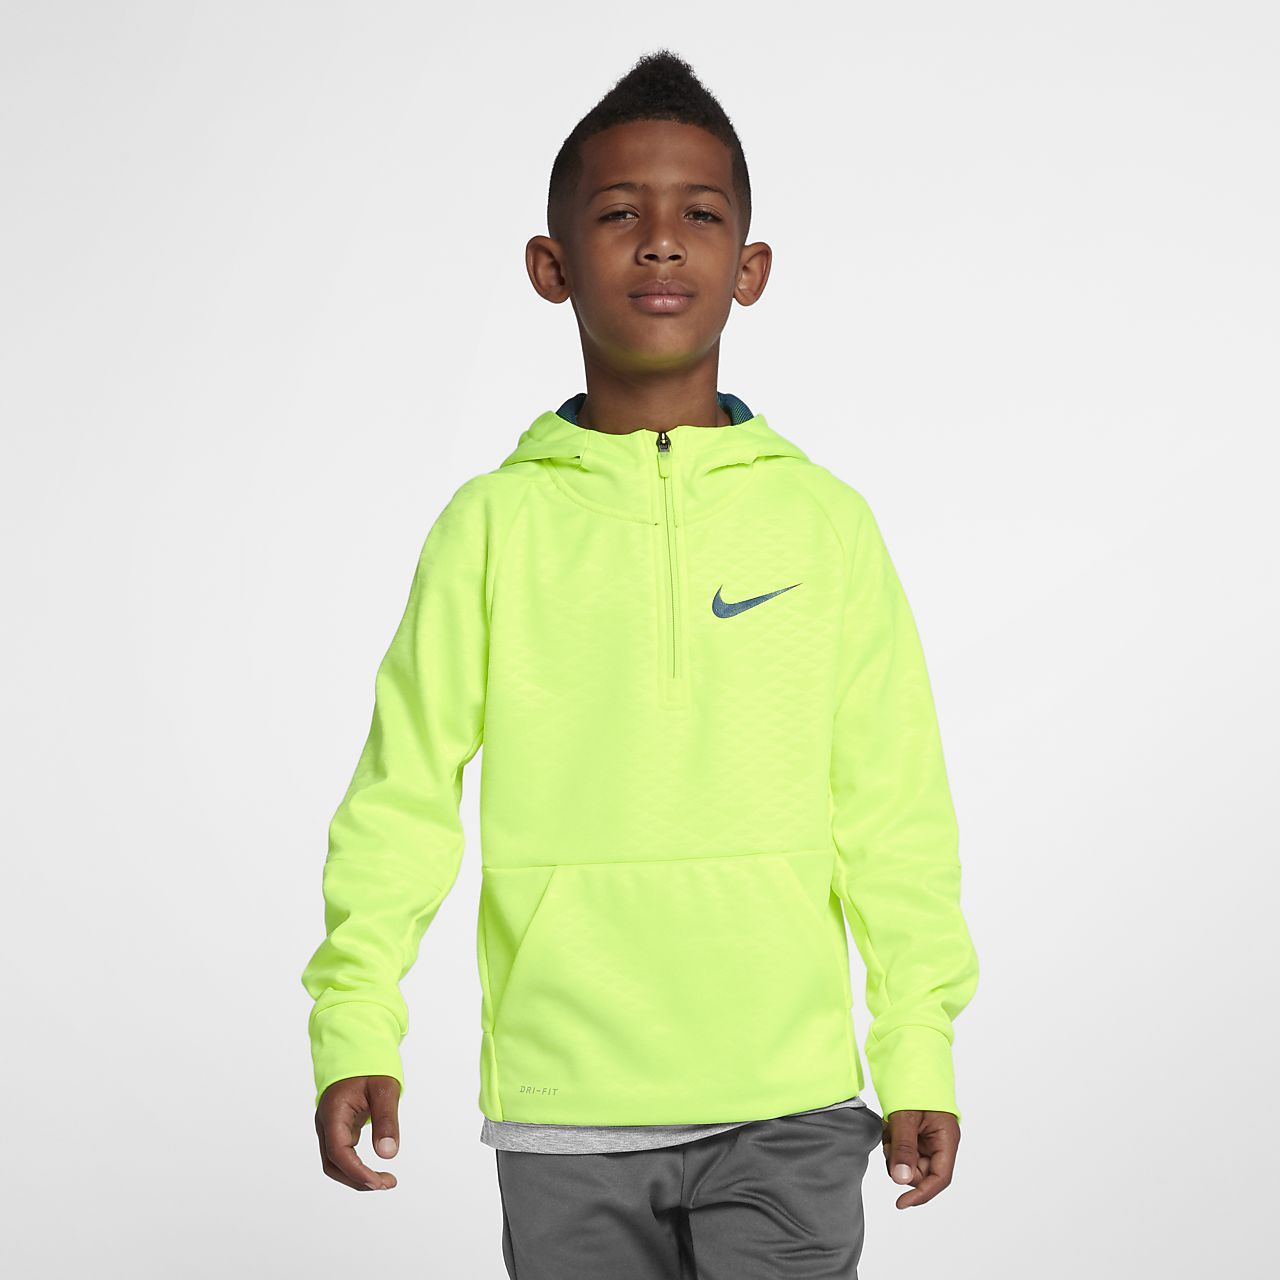 c5c2ece0040b Nike Dri-FIT Therma Big Kids  (Boys ) Half-Zip Training Hoodie. Nike.com